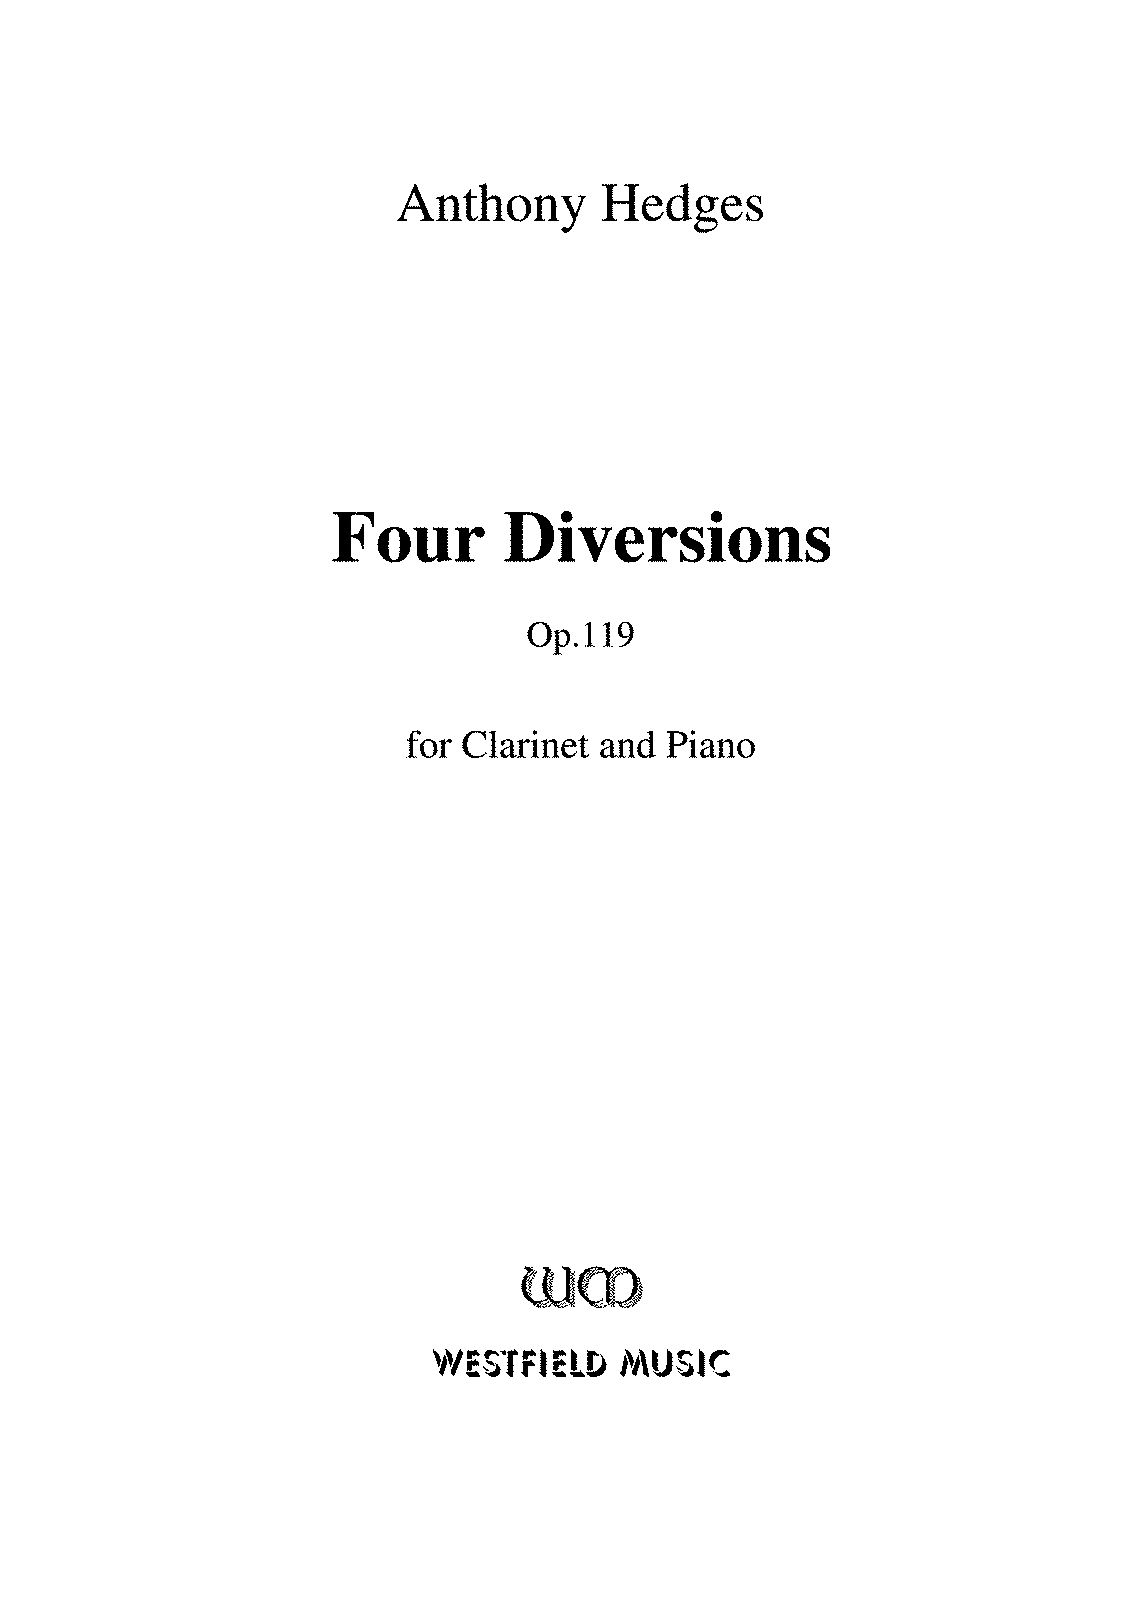 PMLP102653-FourDiversions.Piano.pdf